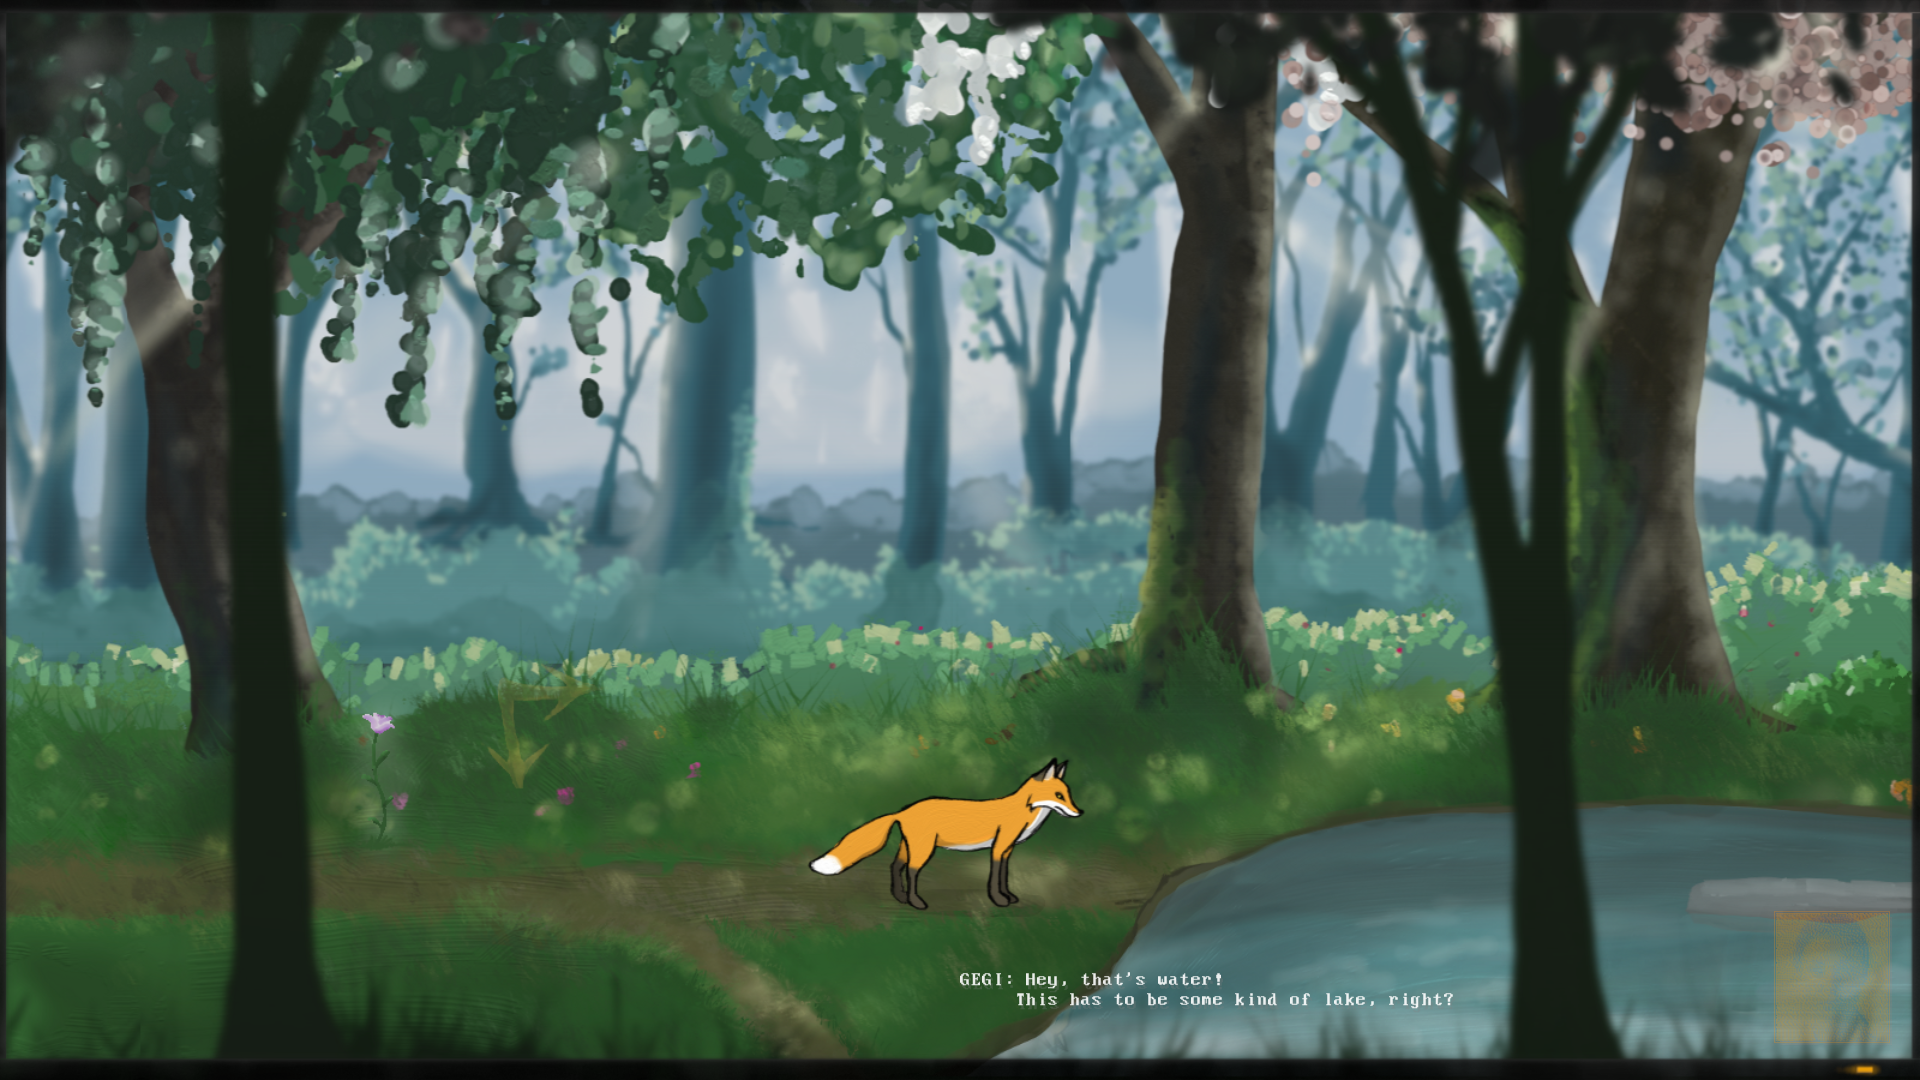 The fox of Auf Abwegen stands at a pond in the forest. Subtitles show the character Gegi saying